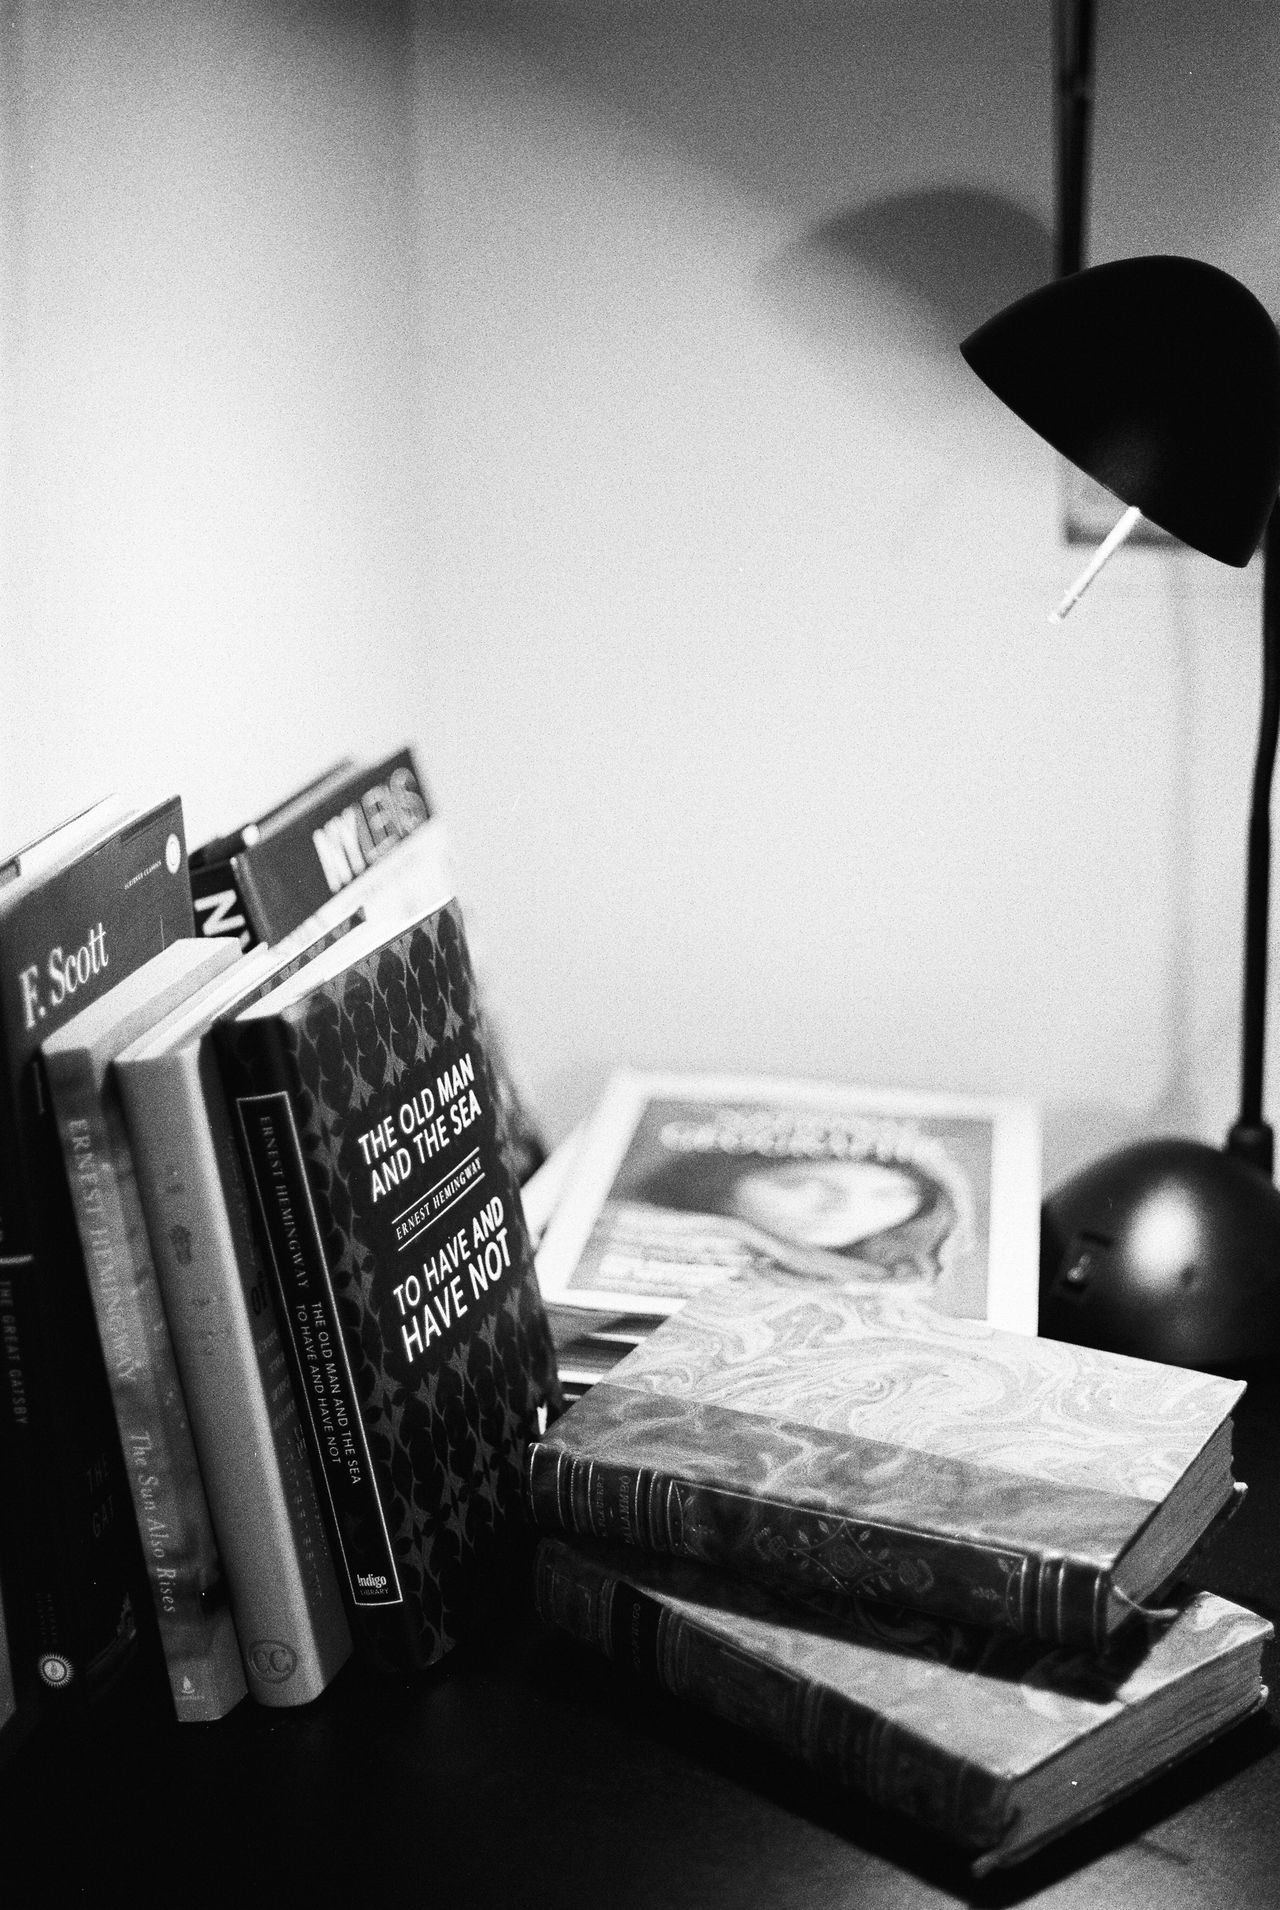 My numerous lectures before bed. National Geographic, Ernest Hemingway, Francis S. Fitzgerald, Victor Hugo... What about you? What is on your bed stand? Thunder Bay, Northern Ontario American Literature Analog Art Black And White Blackandwhite Books Books ♥ Close-up Contrast Film Photography History Ilford Ilford Film Indoors  Light Literature Magazine Night Night Stand No People Reading Reading & Relaxing Reading A Book Reading Time Shadows